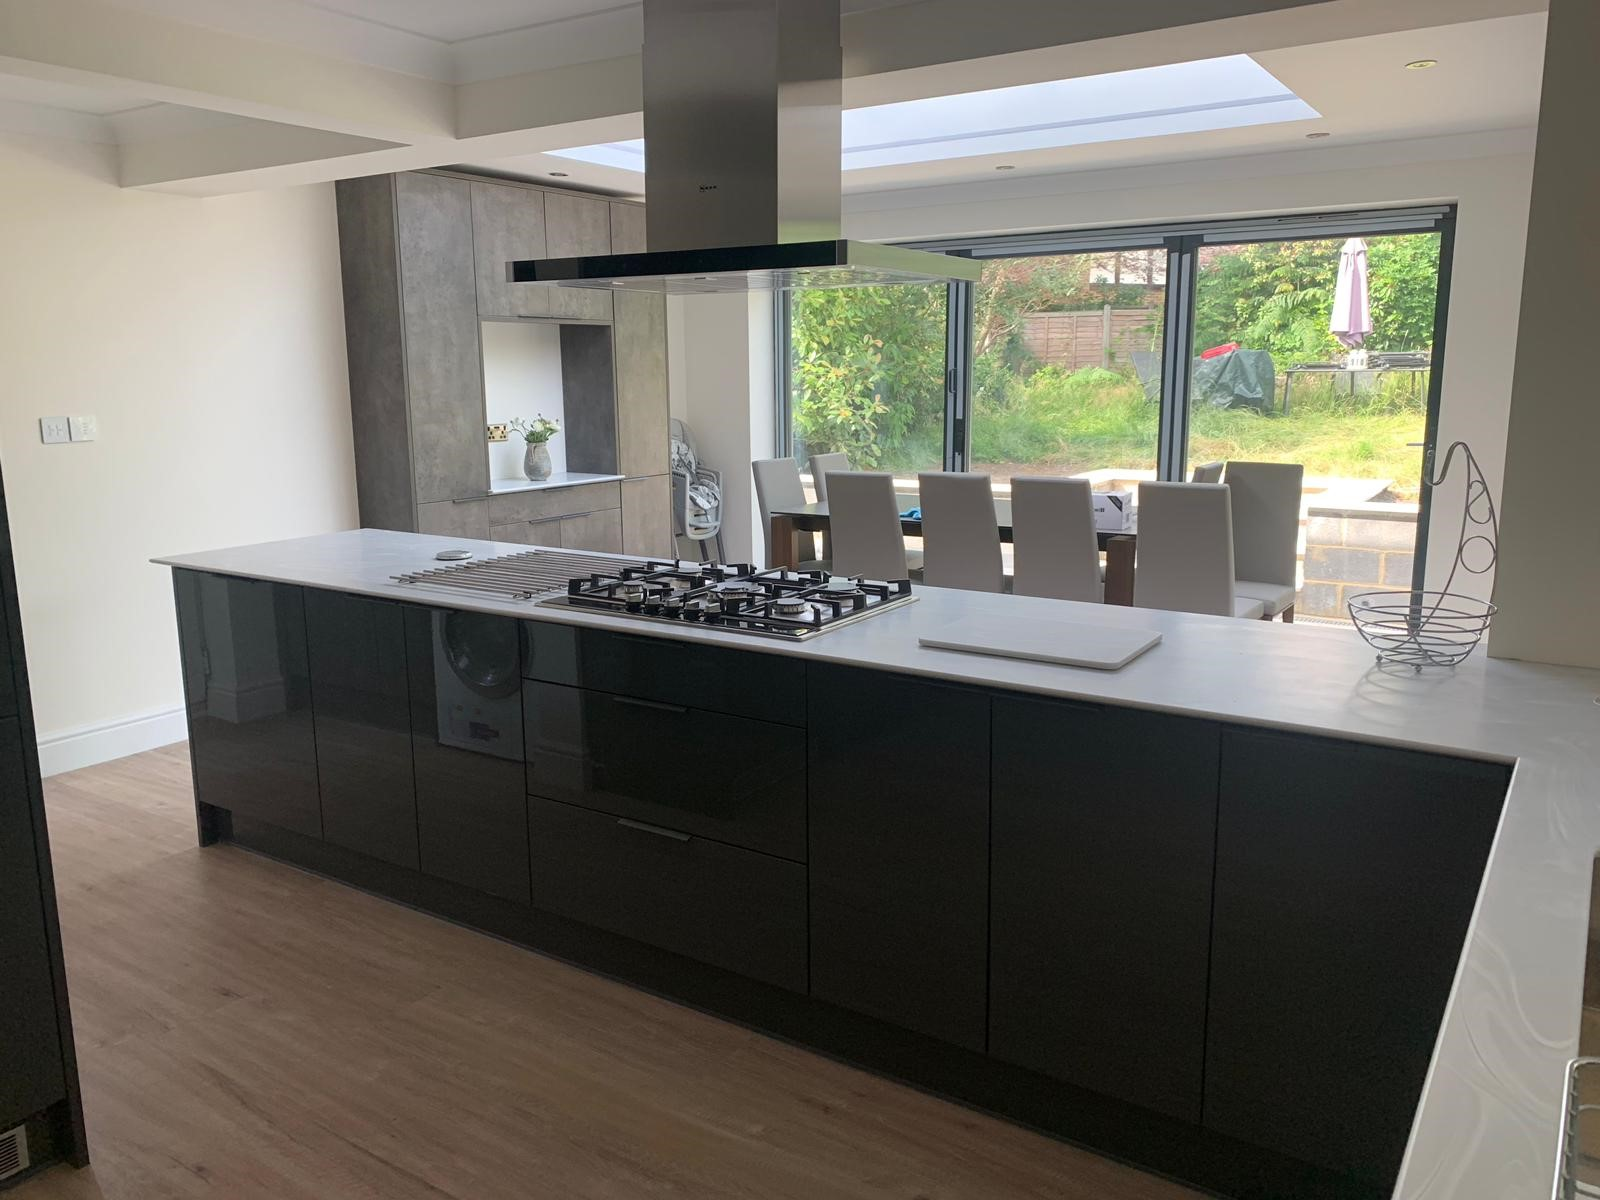 New Kitchen Fitted for Extension in West End, Chobham 5